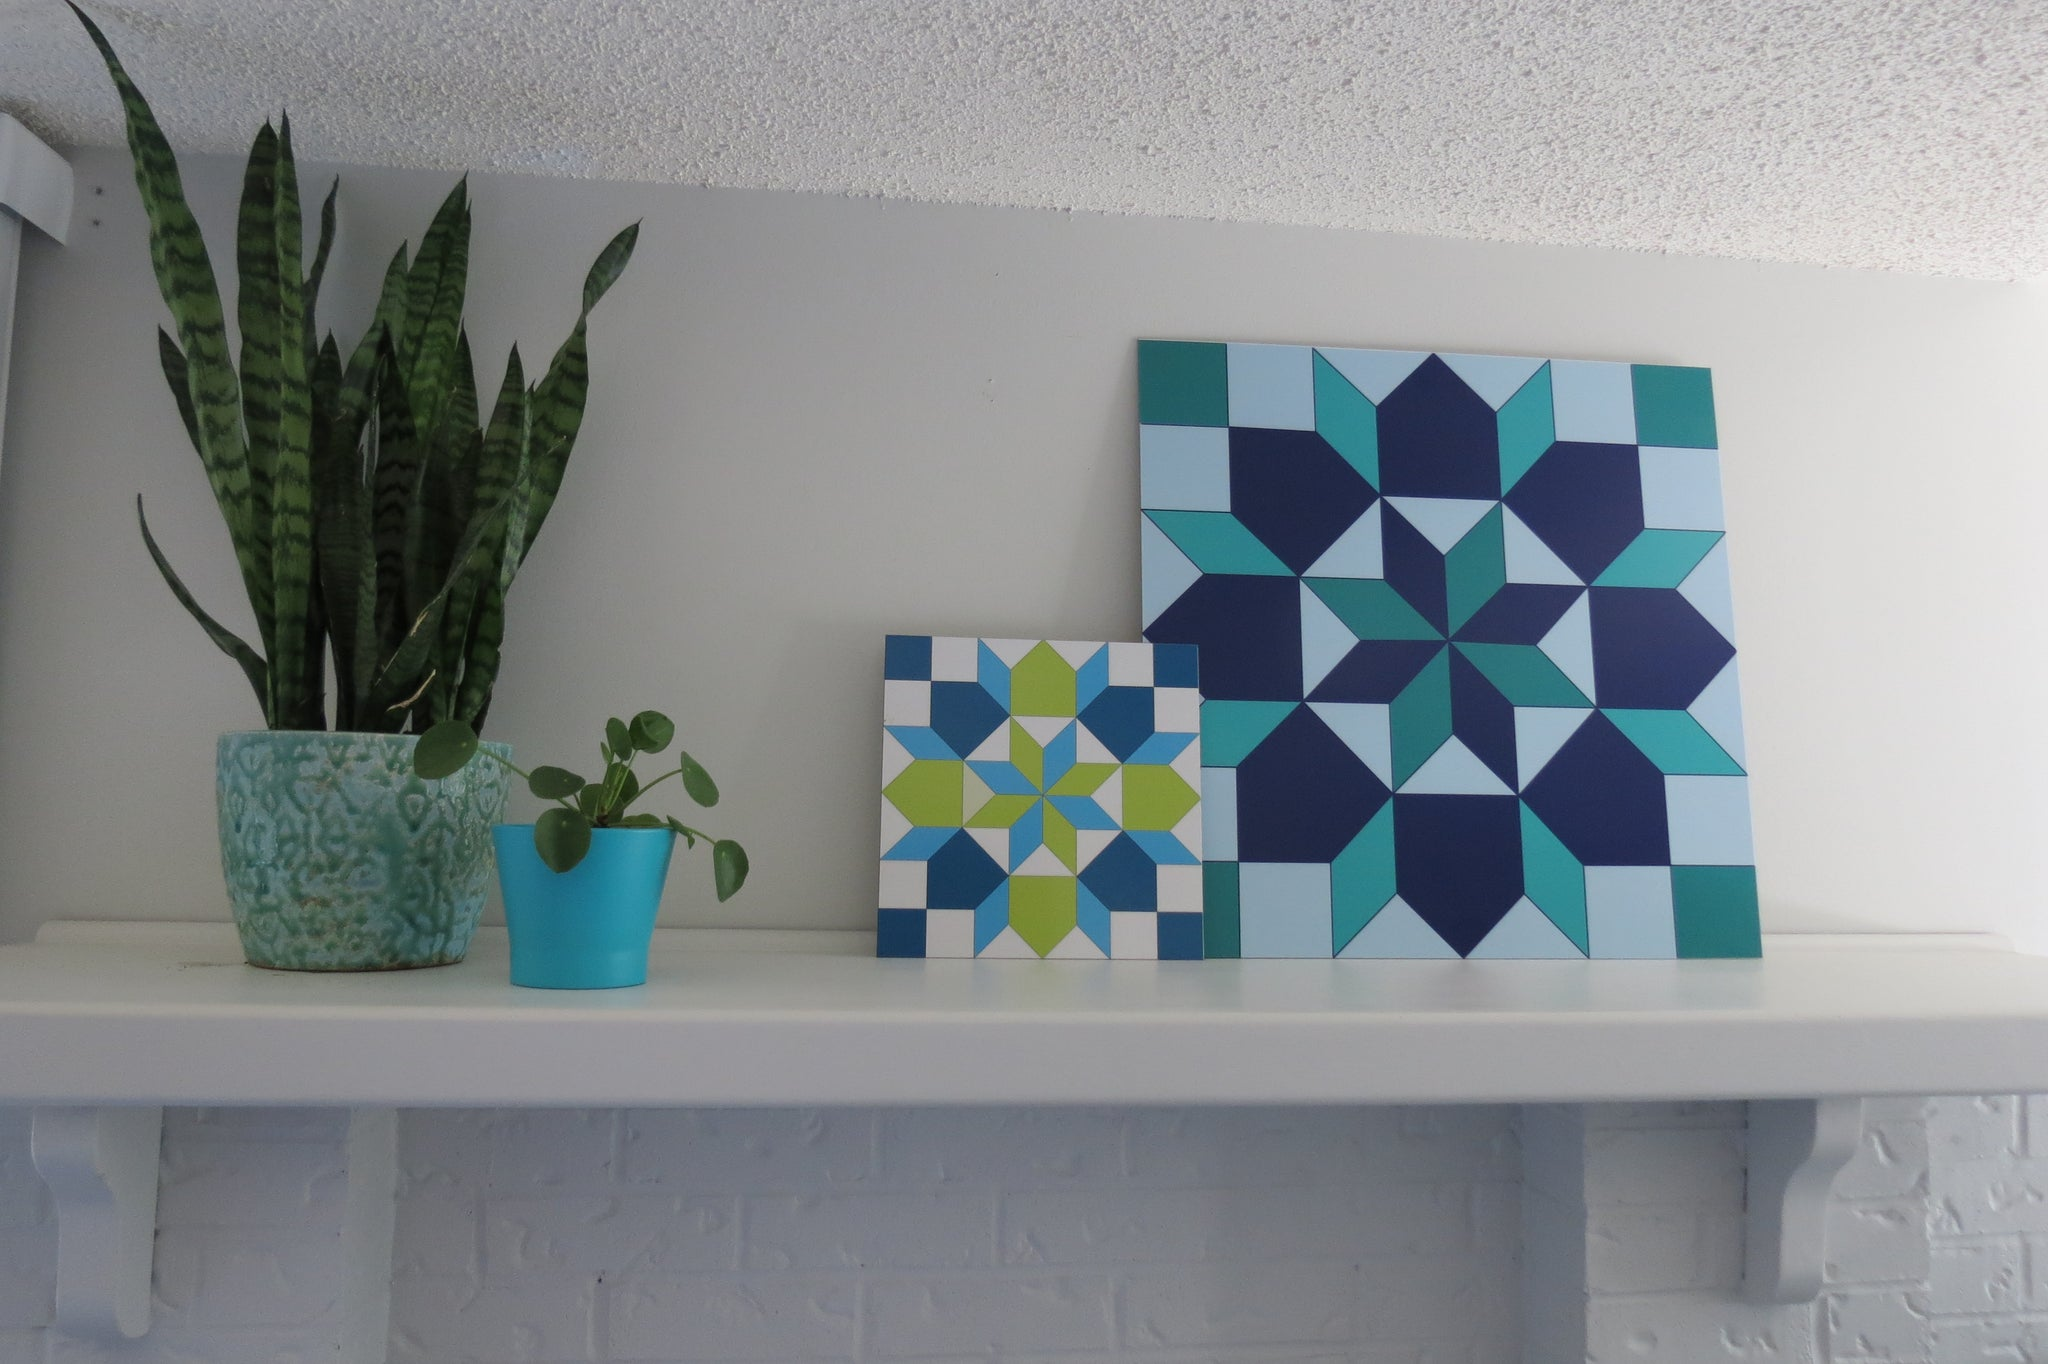 Inspiration - Quilt Designs in the Yard